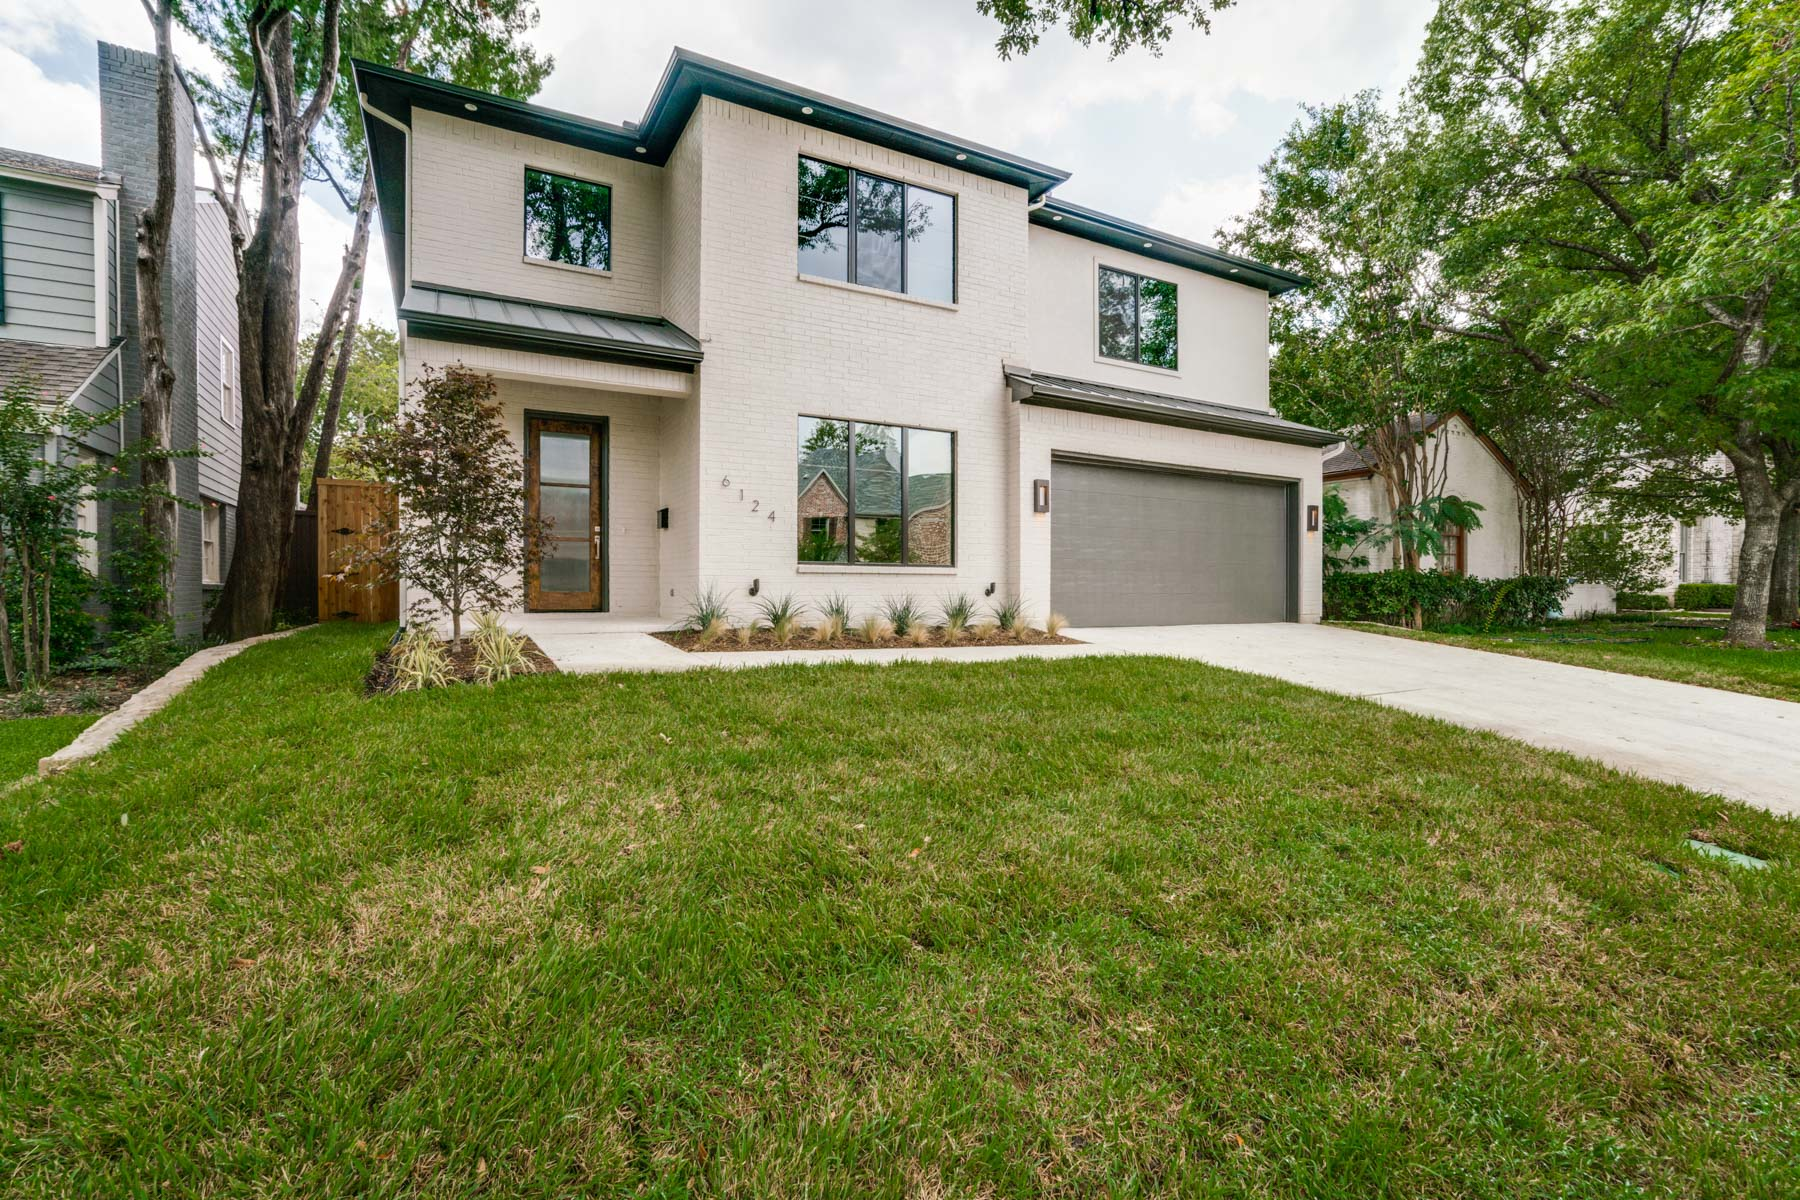 Maison unifamiliale pour l Vente à Modern New Build 6124 Penrose Ave Dallas, Texas, 75214 États-Unis